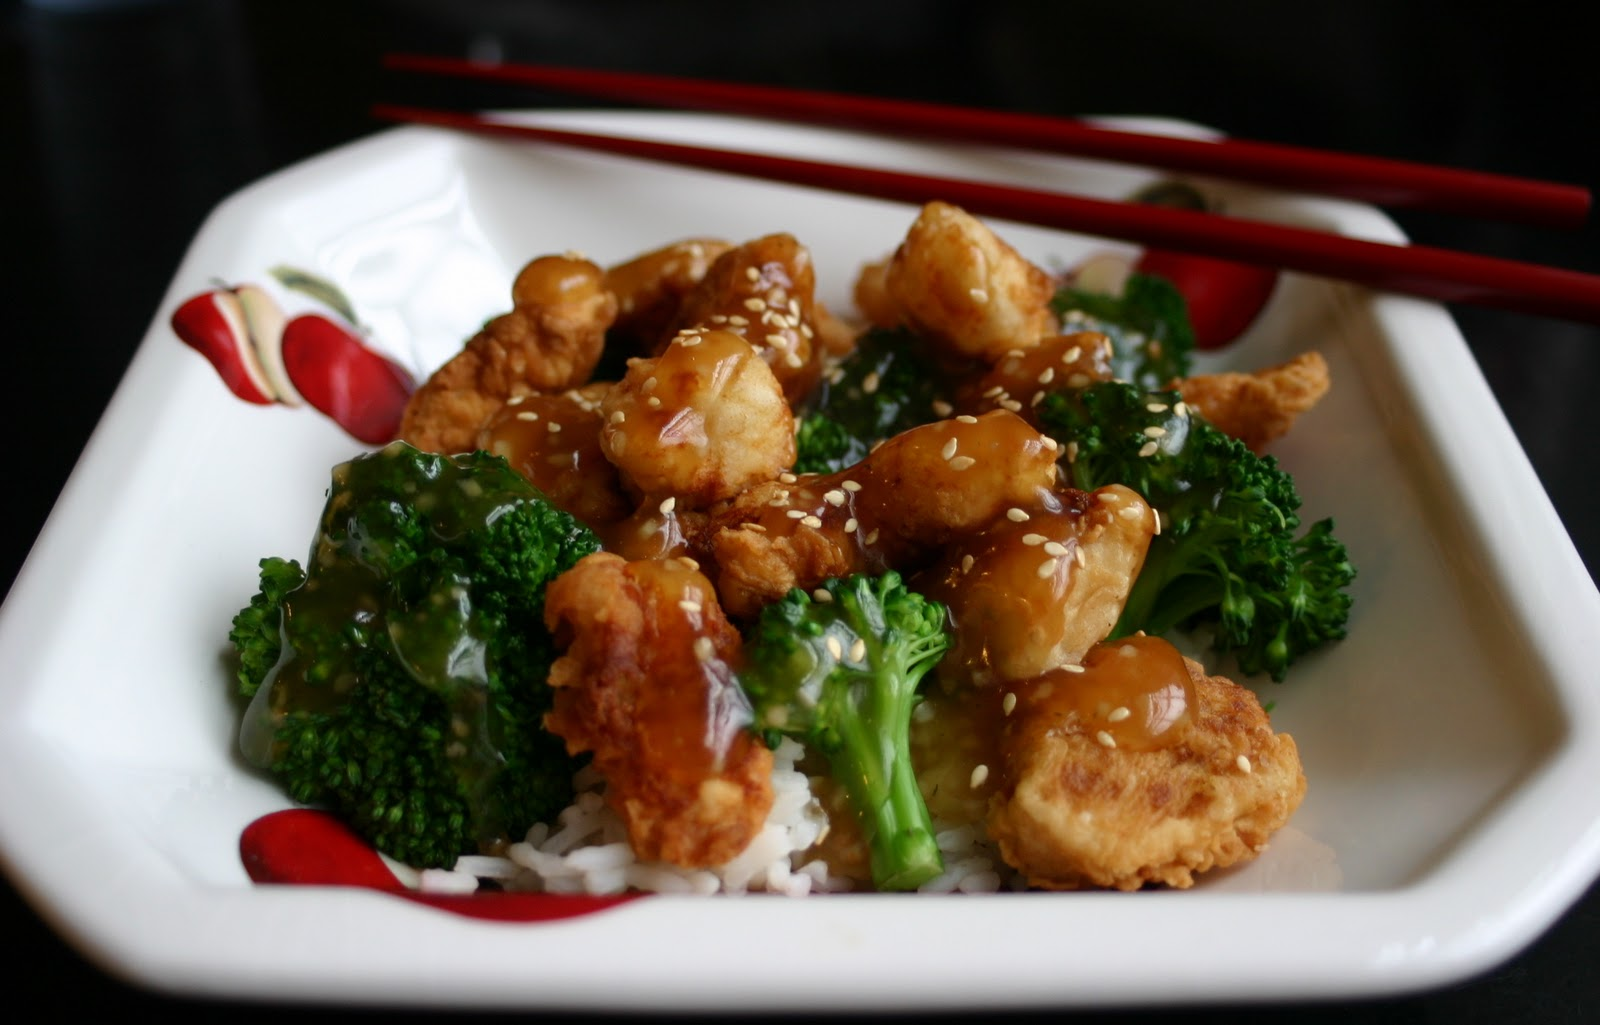 My Retro Kitchen: Sesame Chicken with Broccoli and Rice